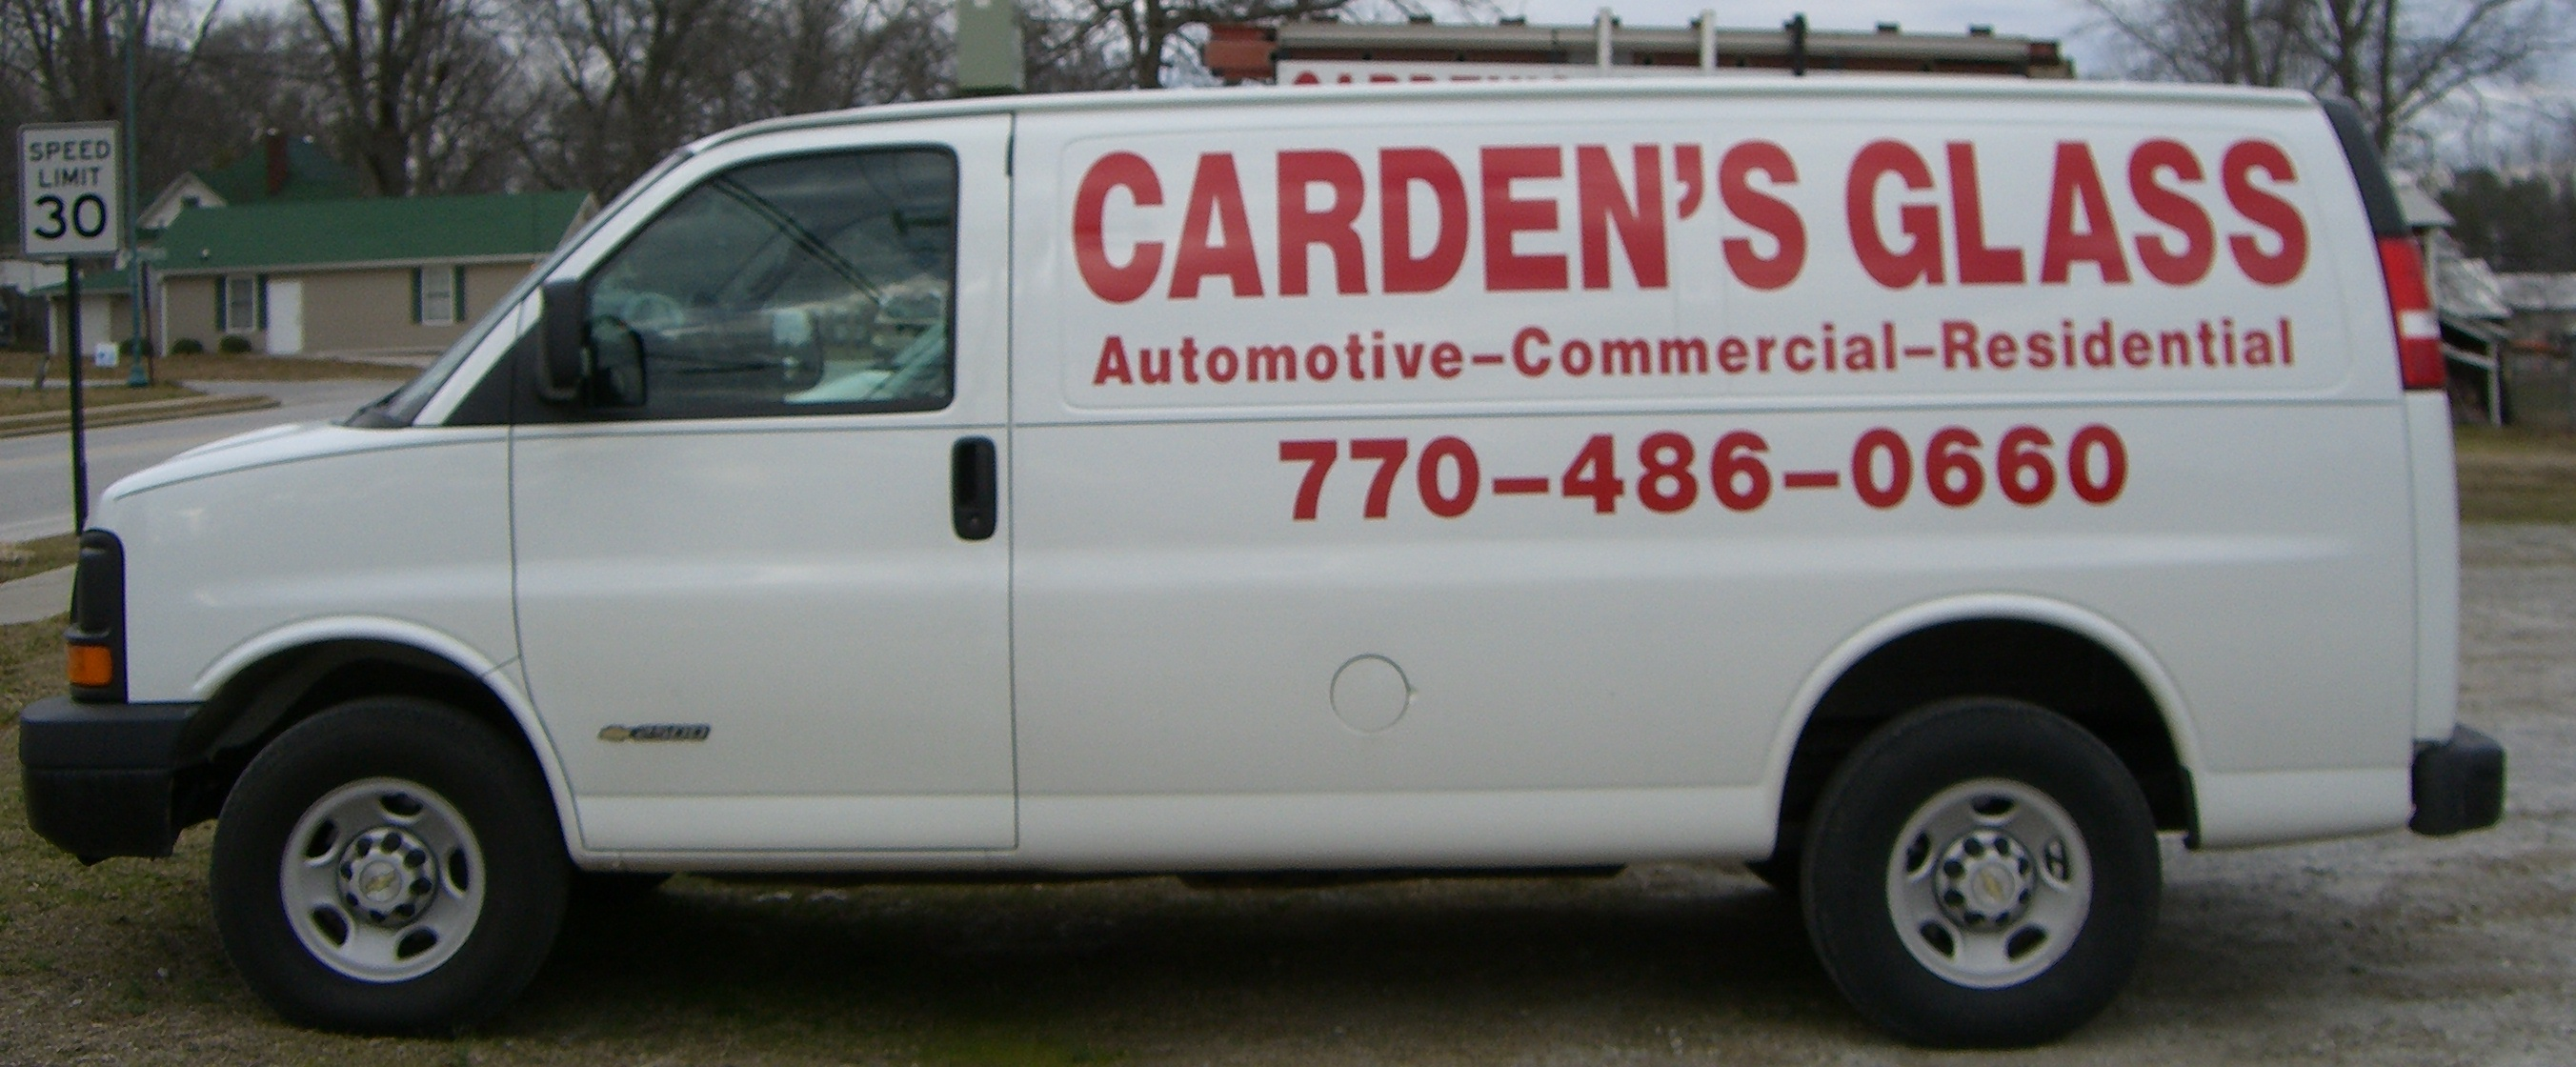 Carden 39 s glass company coupons near me in tyrone 8coupons for Window companies near me